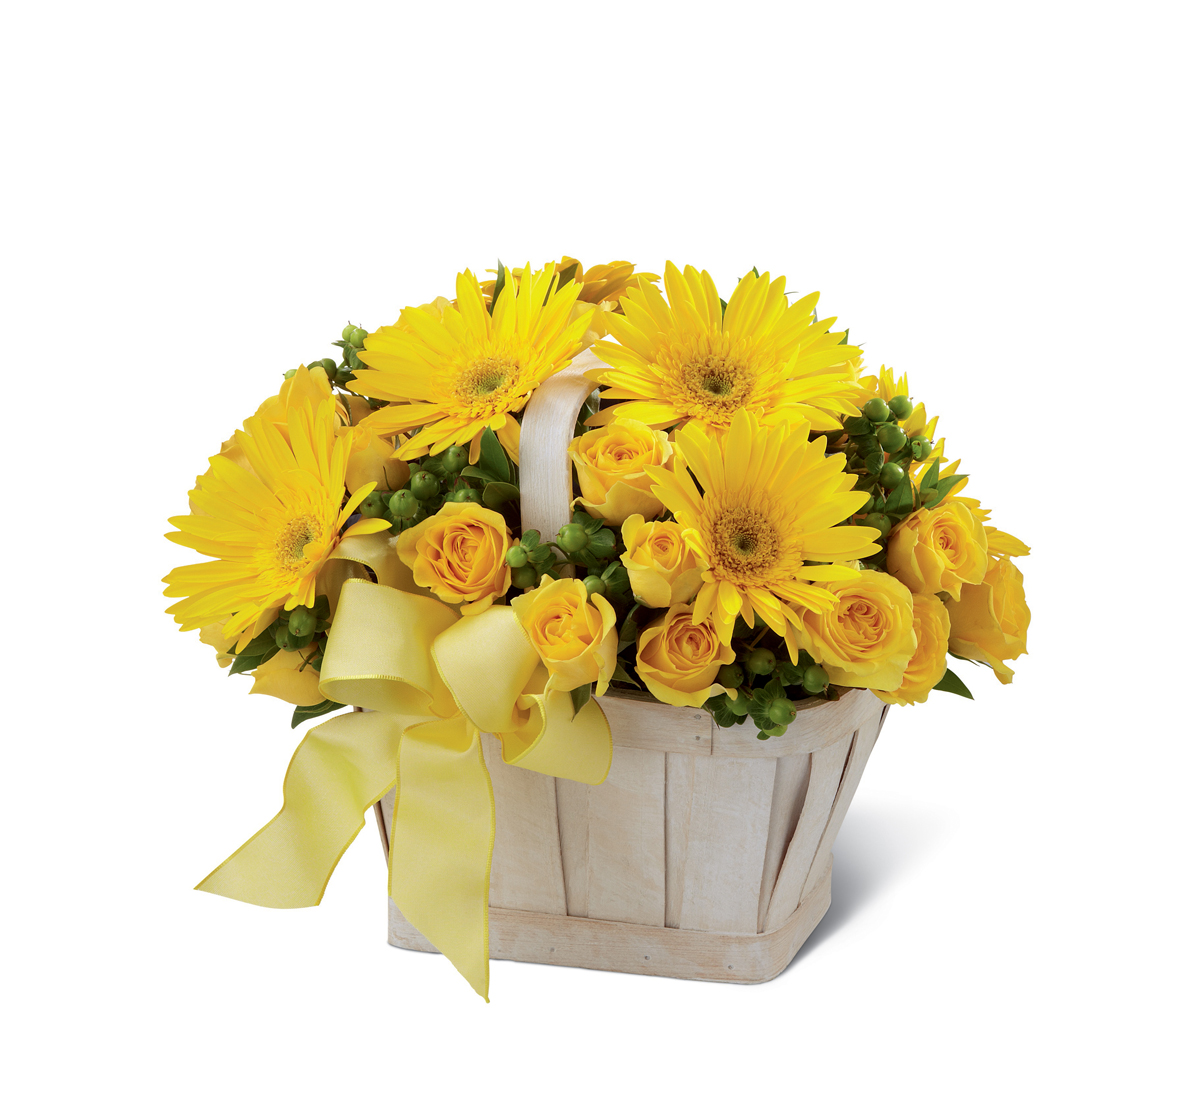 The Ftd Uplifting Moments Bouquet Altamonte Springs Fl Florist